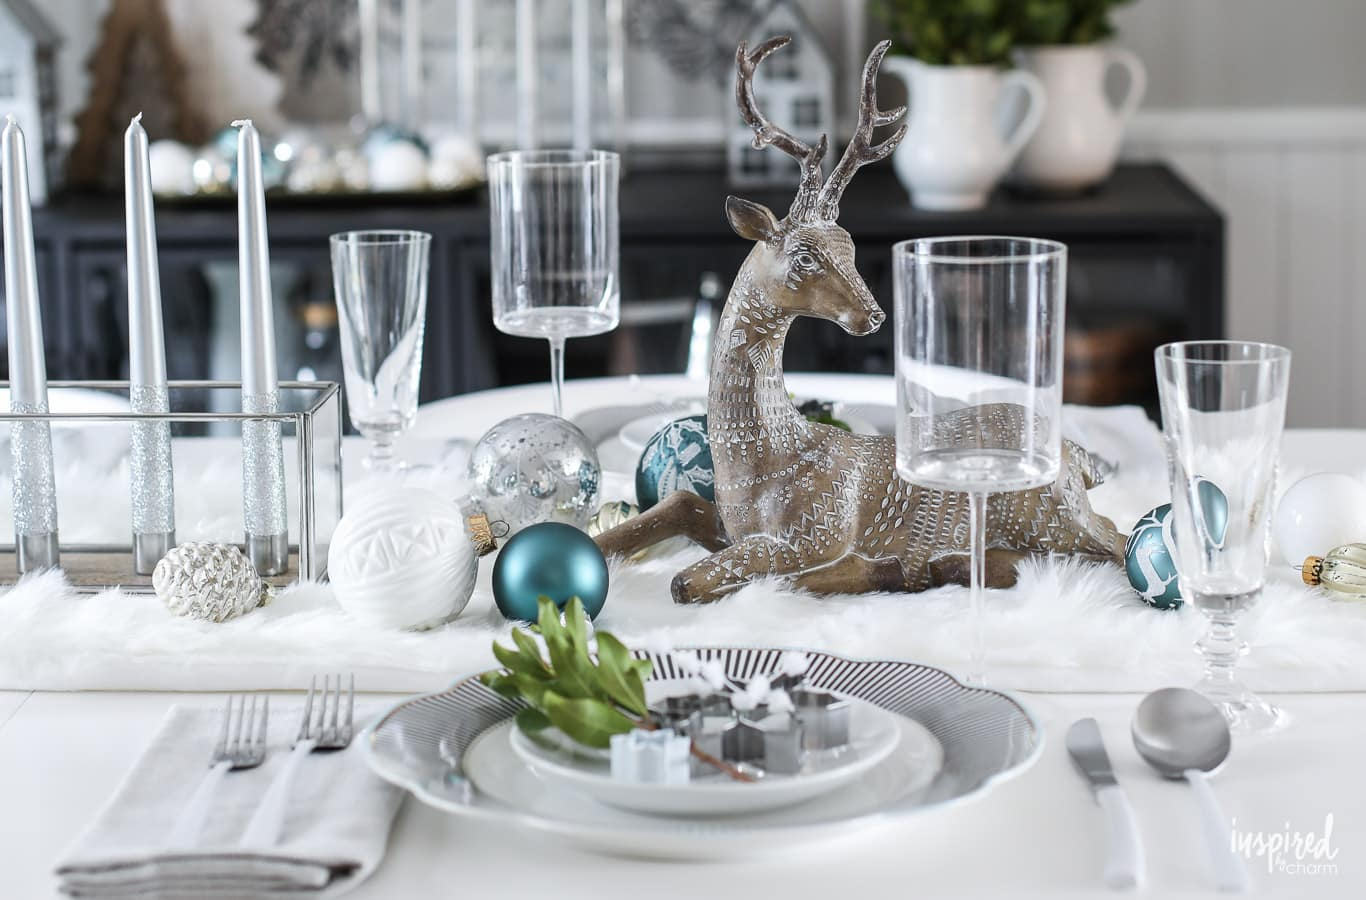 Christmas Table Scape Ideas.Festive Christmas Table Decor Ideas Holiday Decorating Tips